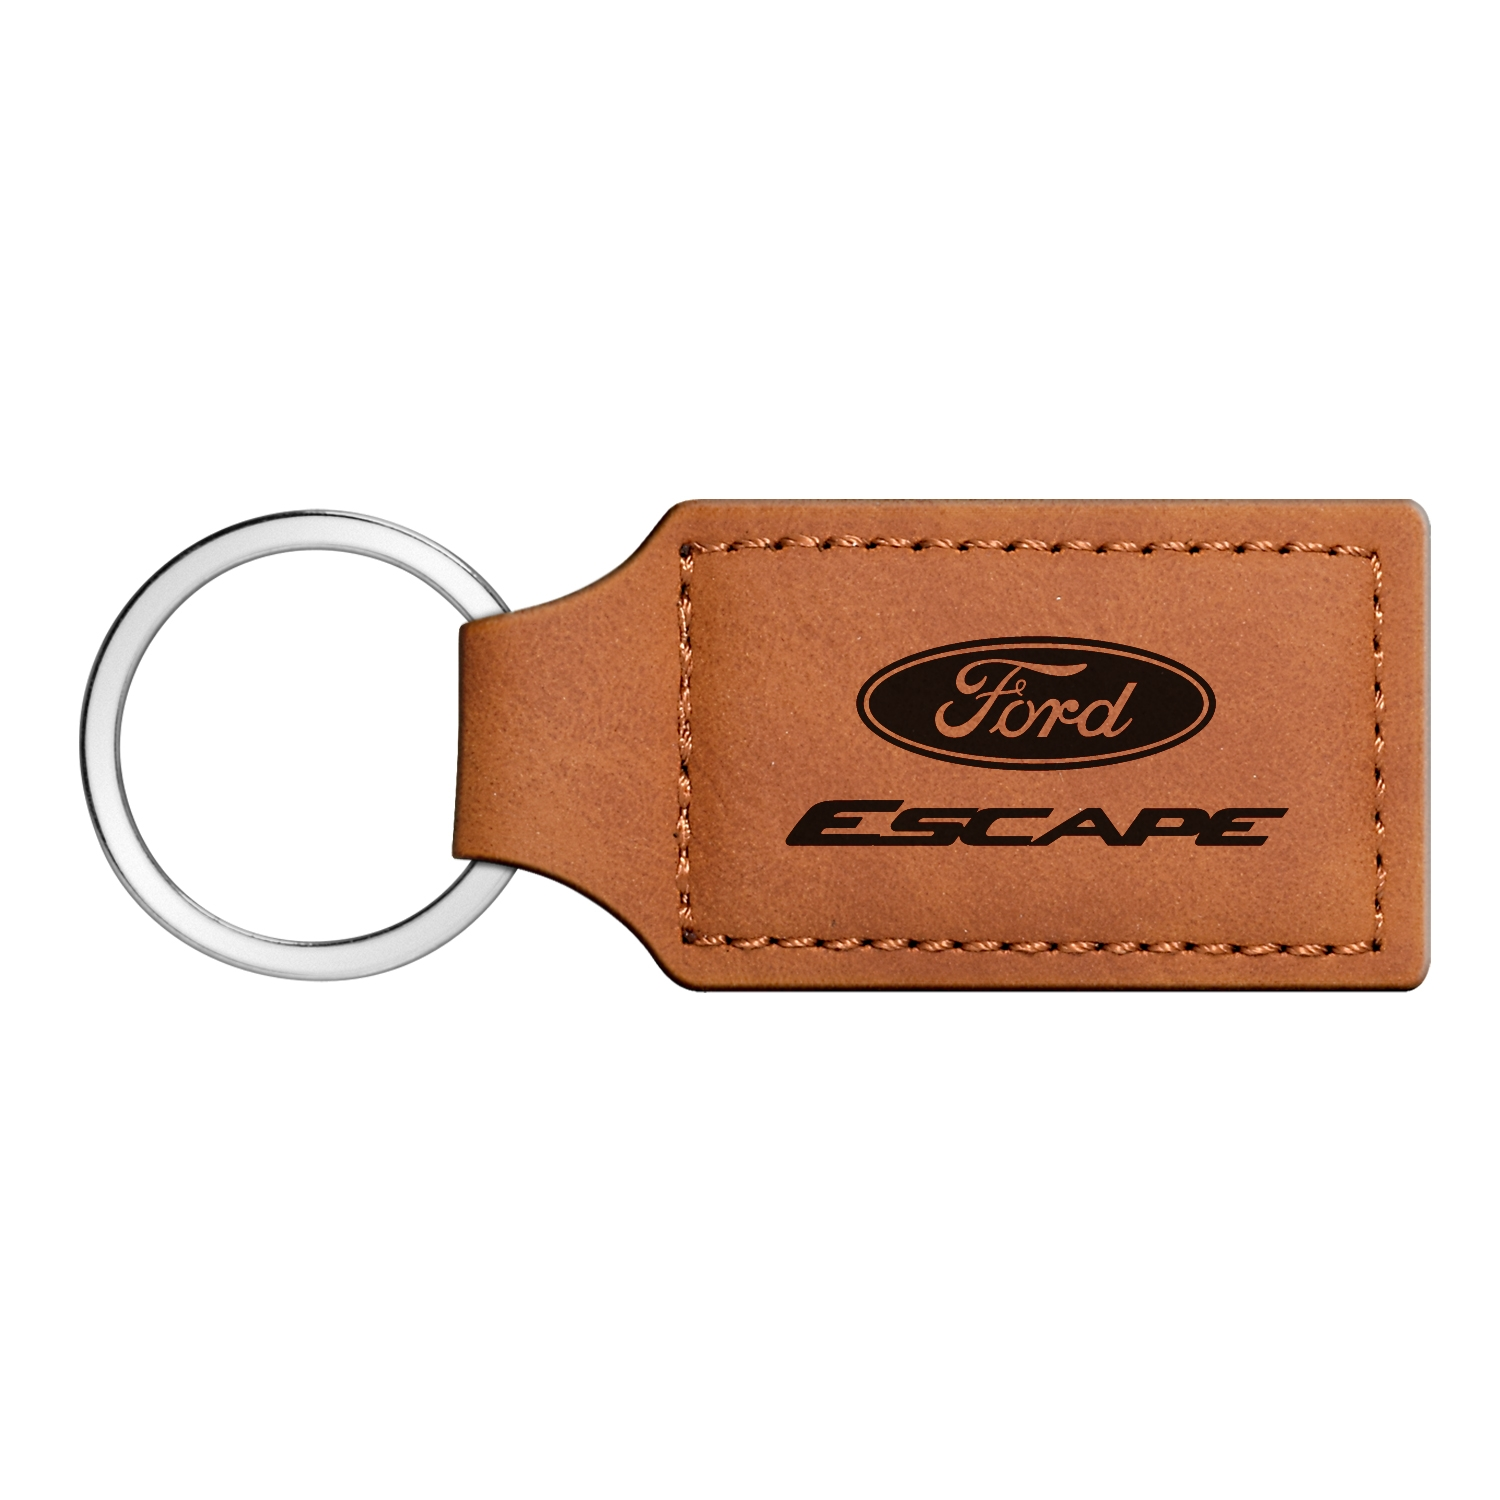 Ford Escape Rectangular Brown Leather Key Chain